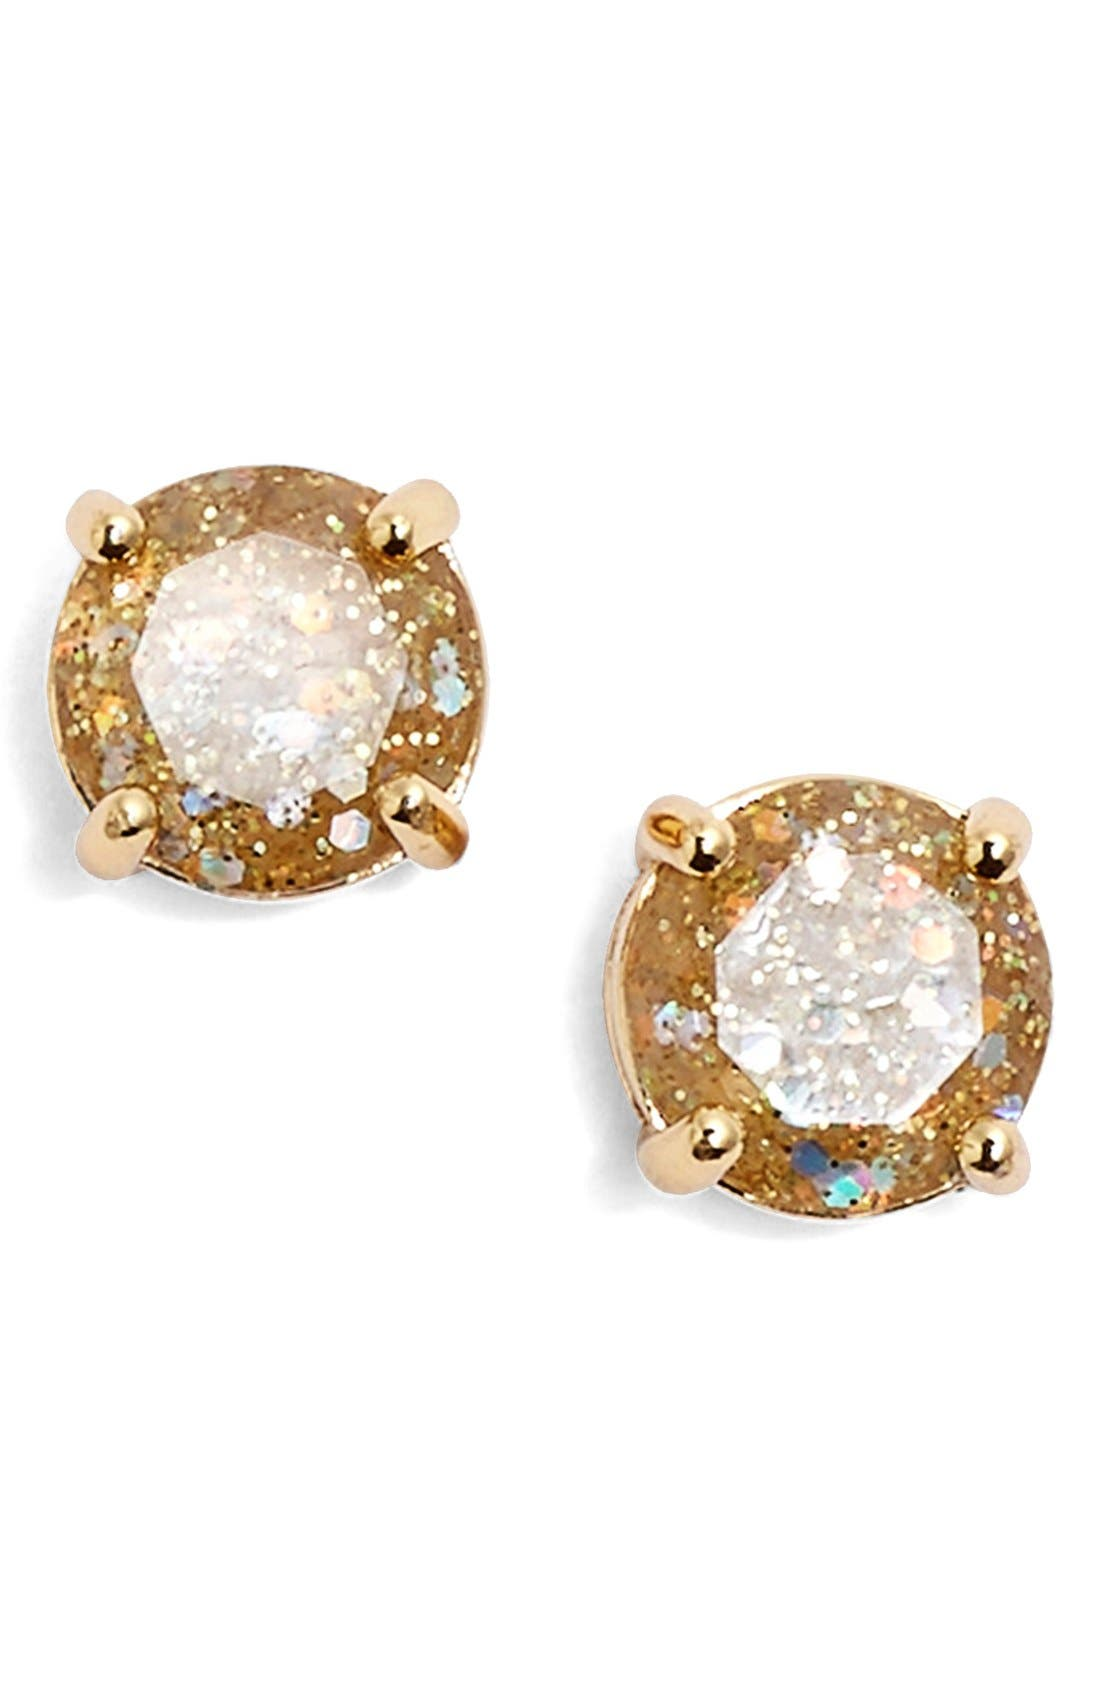 Alternate Image 1 Selected - kate spade new york 'mini glitter' stud earrings